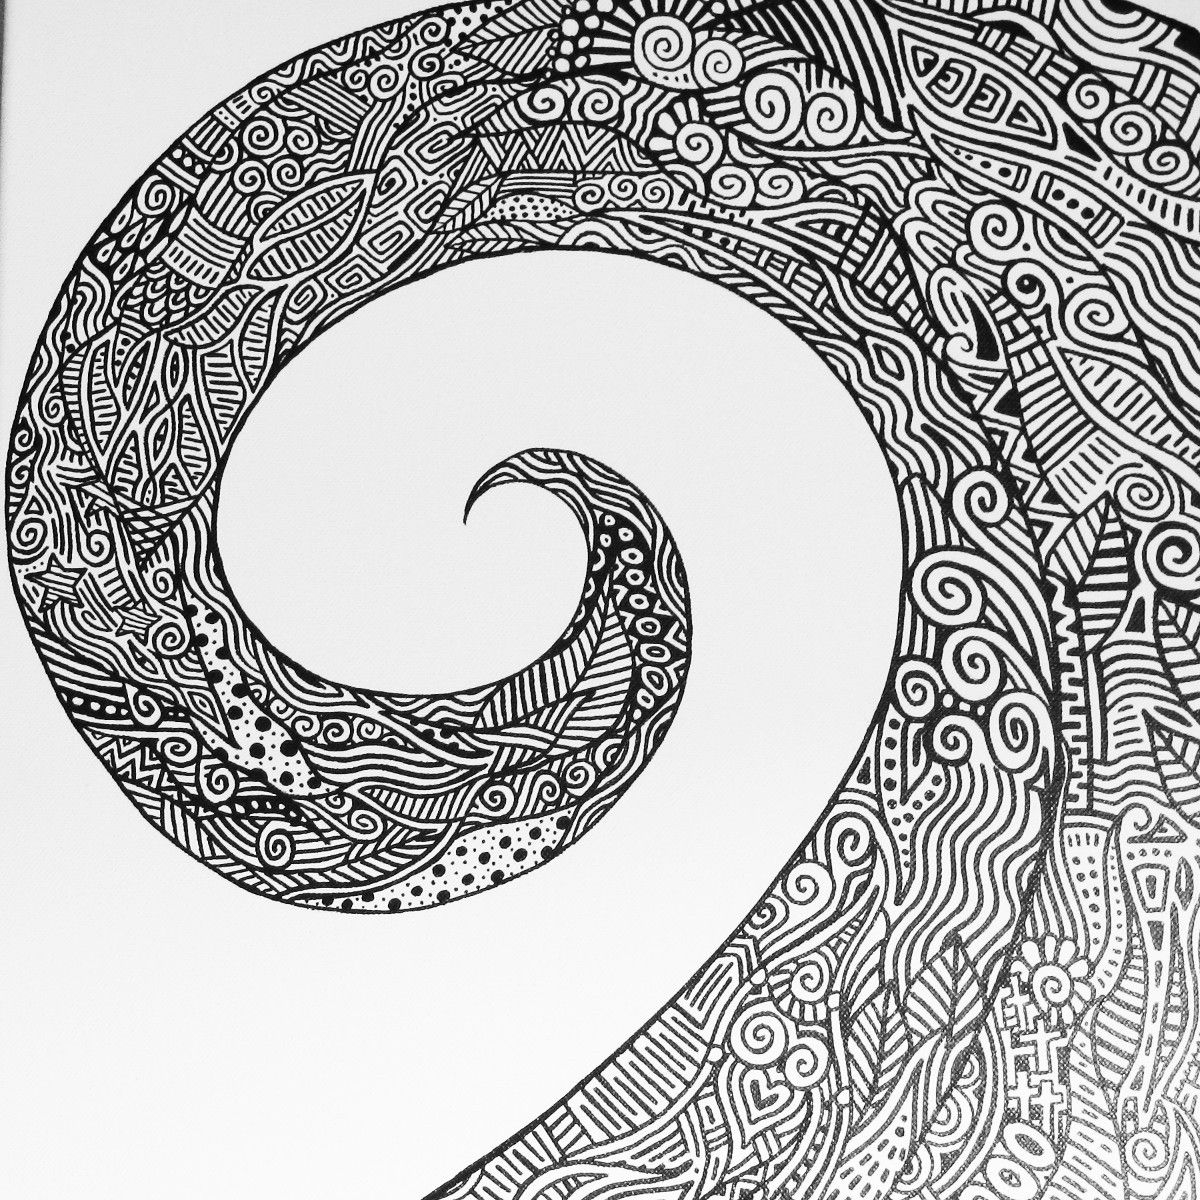 Free printable zentangle coloring pages for adults - Intricate Coloring Pages For Adults Coloring Pages Pictures These Ones Are Actually Free And Go Beyond Mandalas Pinterest Adult Coloring